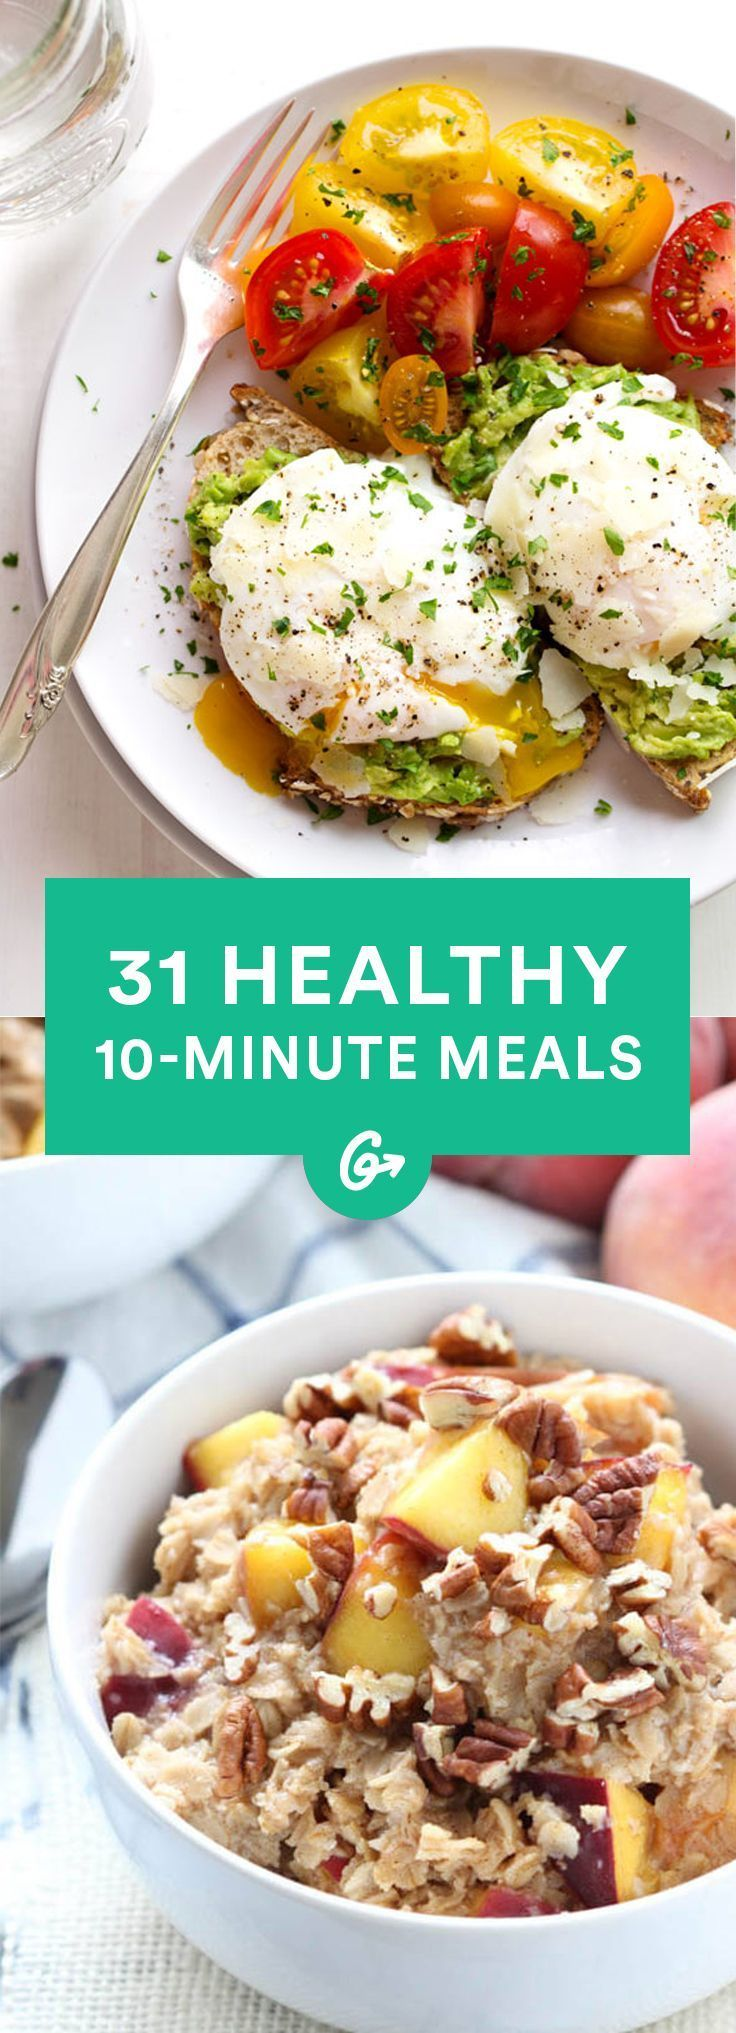 Best 25 Quick Healthy Meals Ideas On Pinterest Quick Healthy regarding fast healthy meals intended for your reference